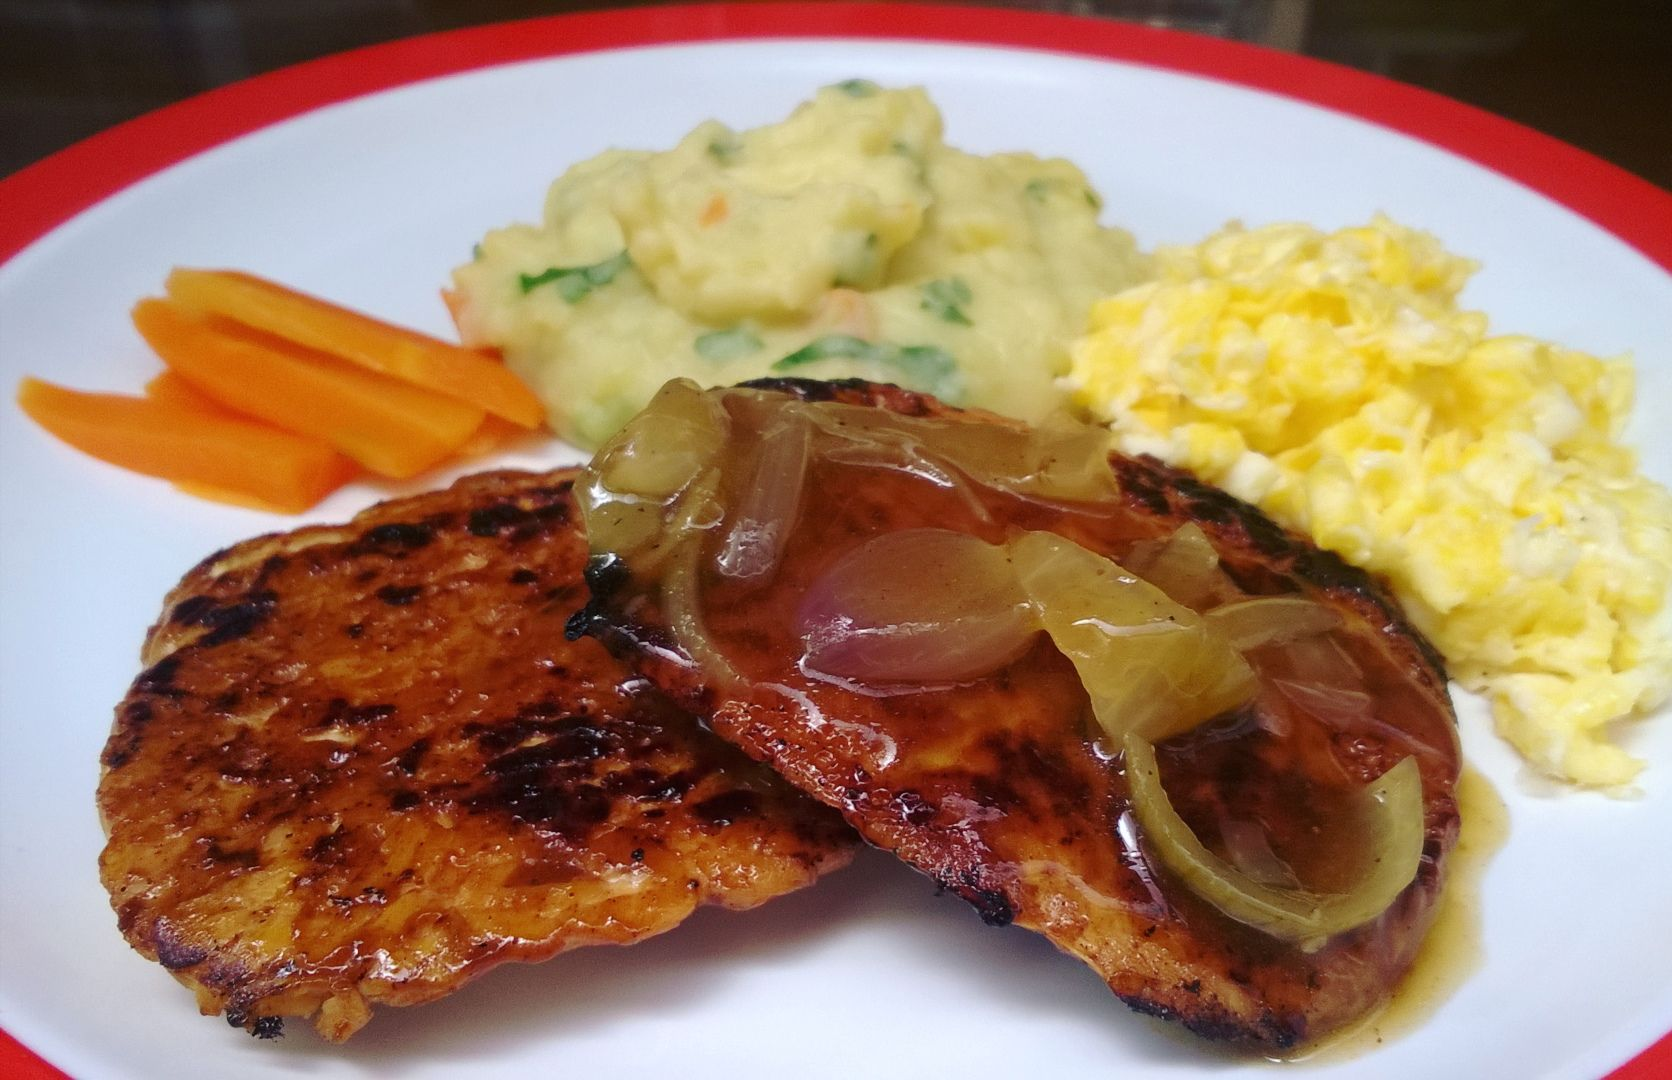 Grilled Tempe With Scrambled Eggs Mashed Potato And Vegetable